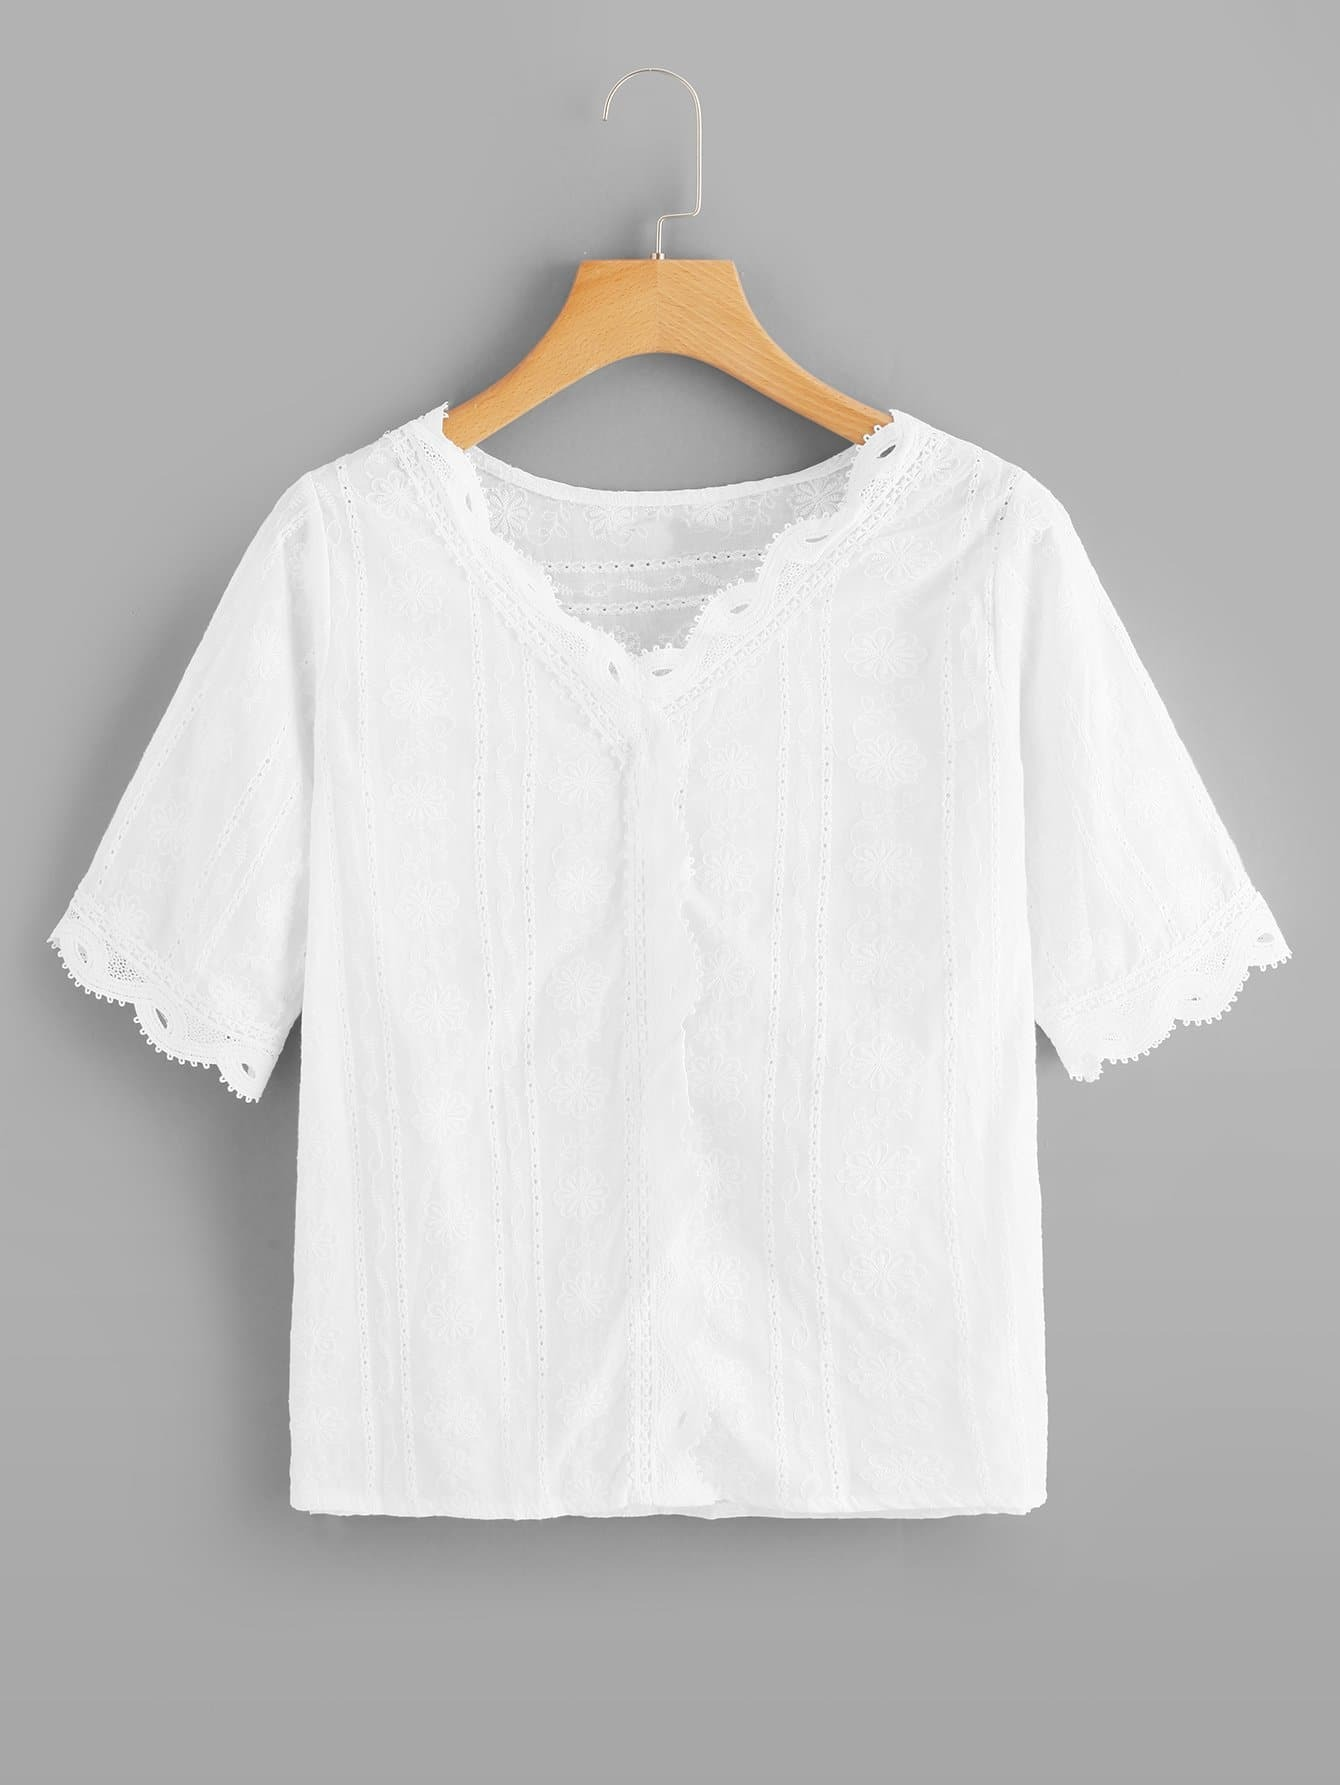 Lace Panel Trim Embroidery Top